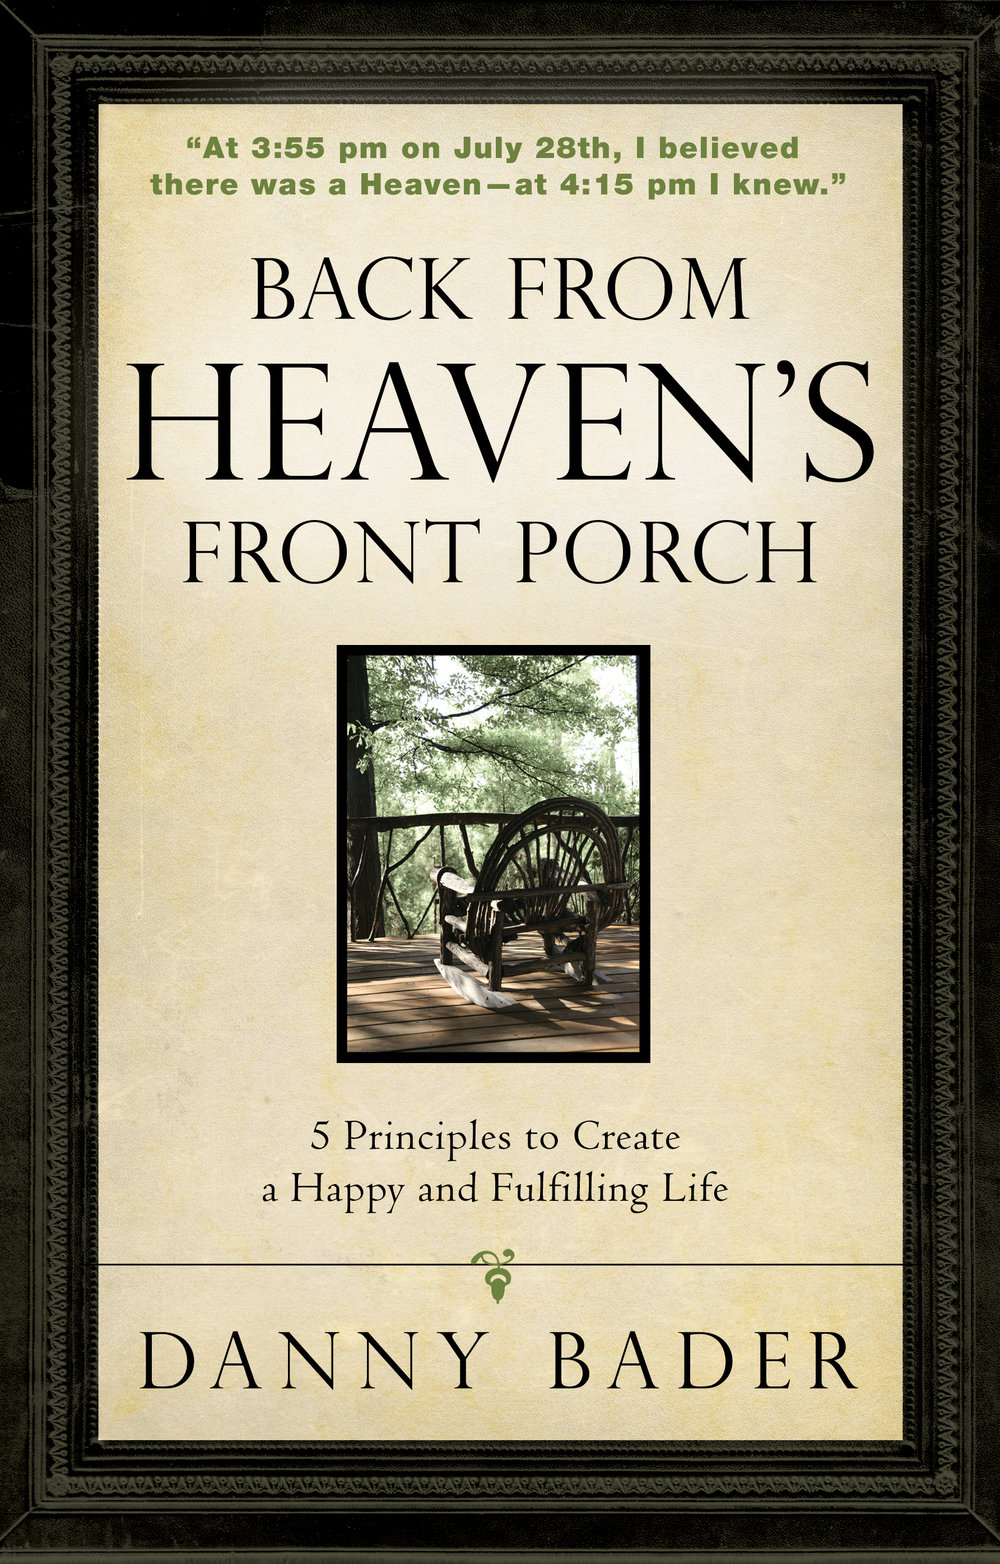 Back From Heaven's Front Porch - By danny bader